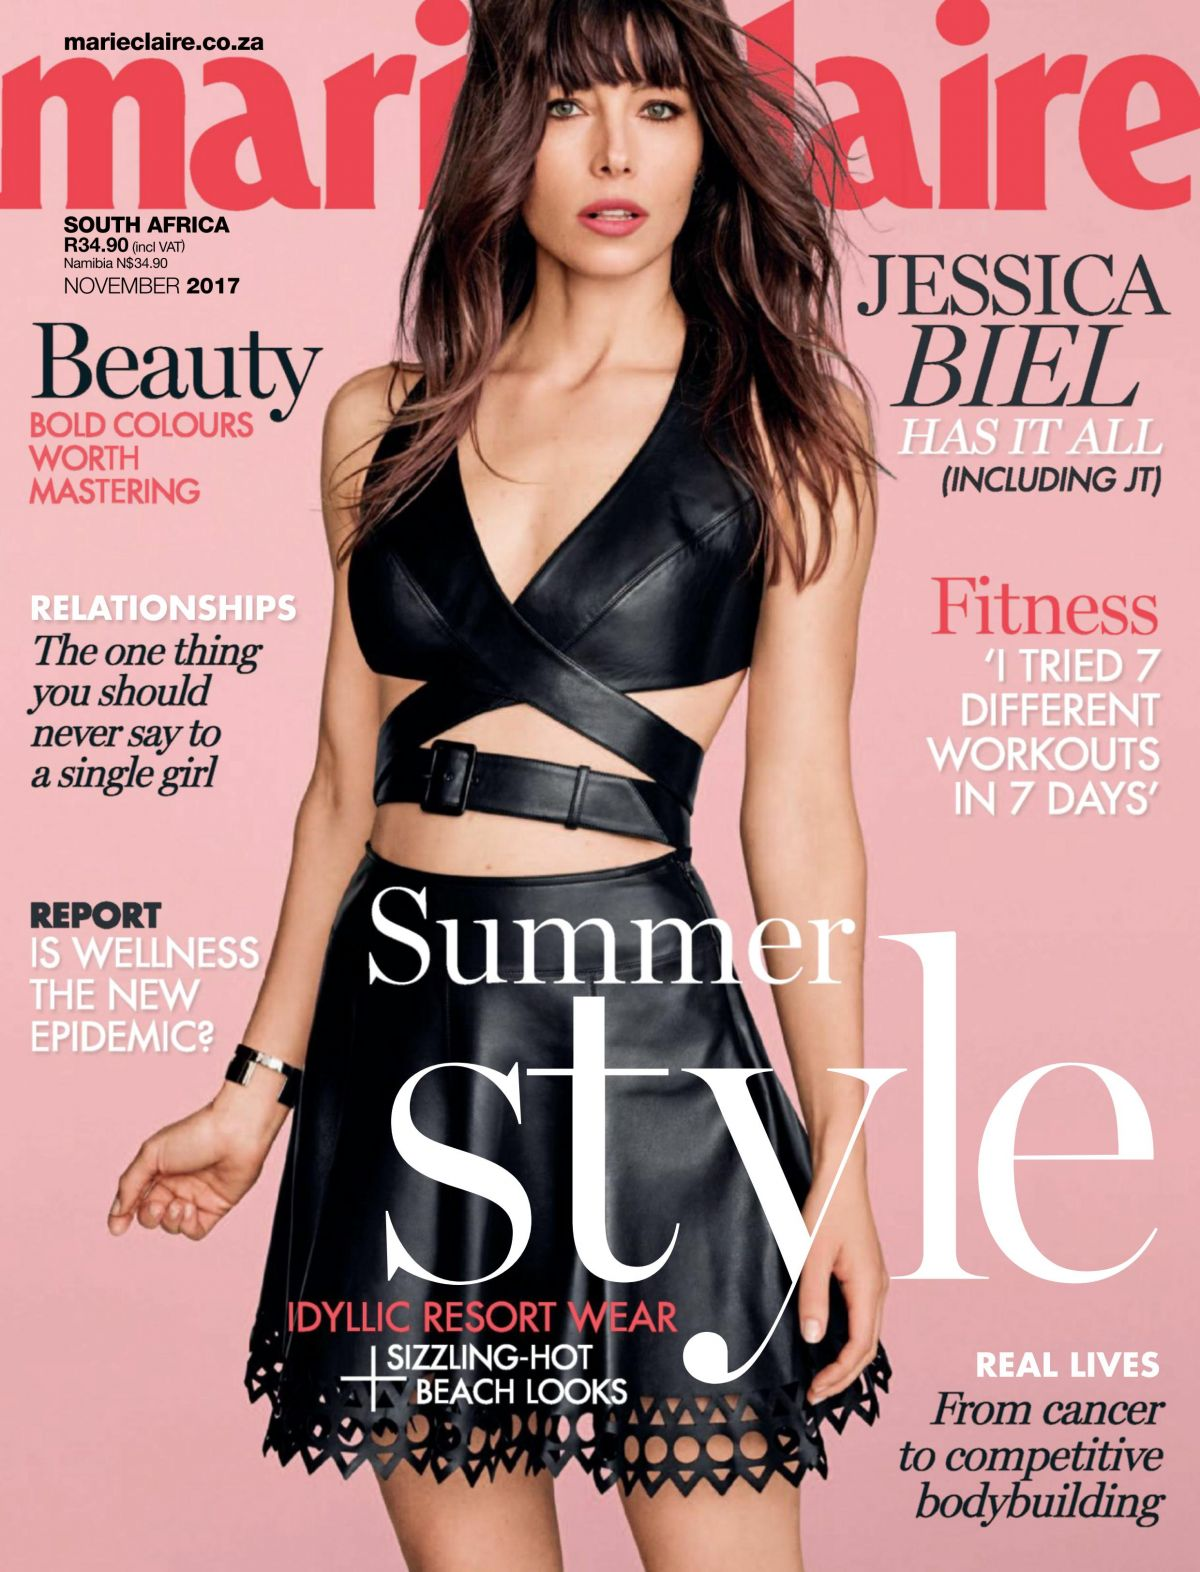 jessica biel marie claire south africa edition nov 2017 celebzz celebzz. Black Bedroom Furniture Sets. Home Design Ideas